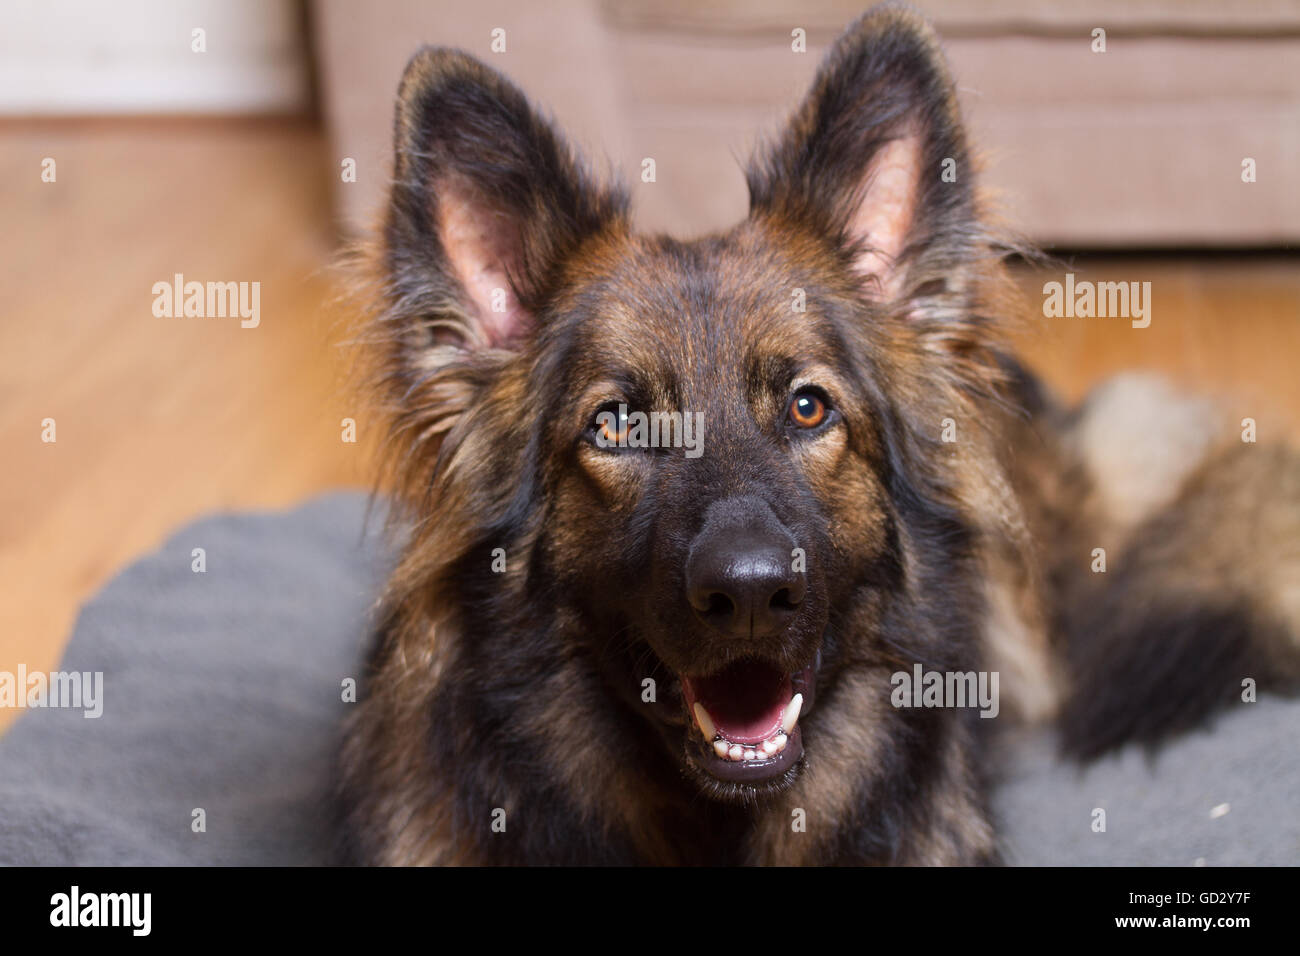 German Shepherd Dog on his bed in a house looking at the camera. He is sable coloured. - Stock Image